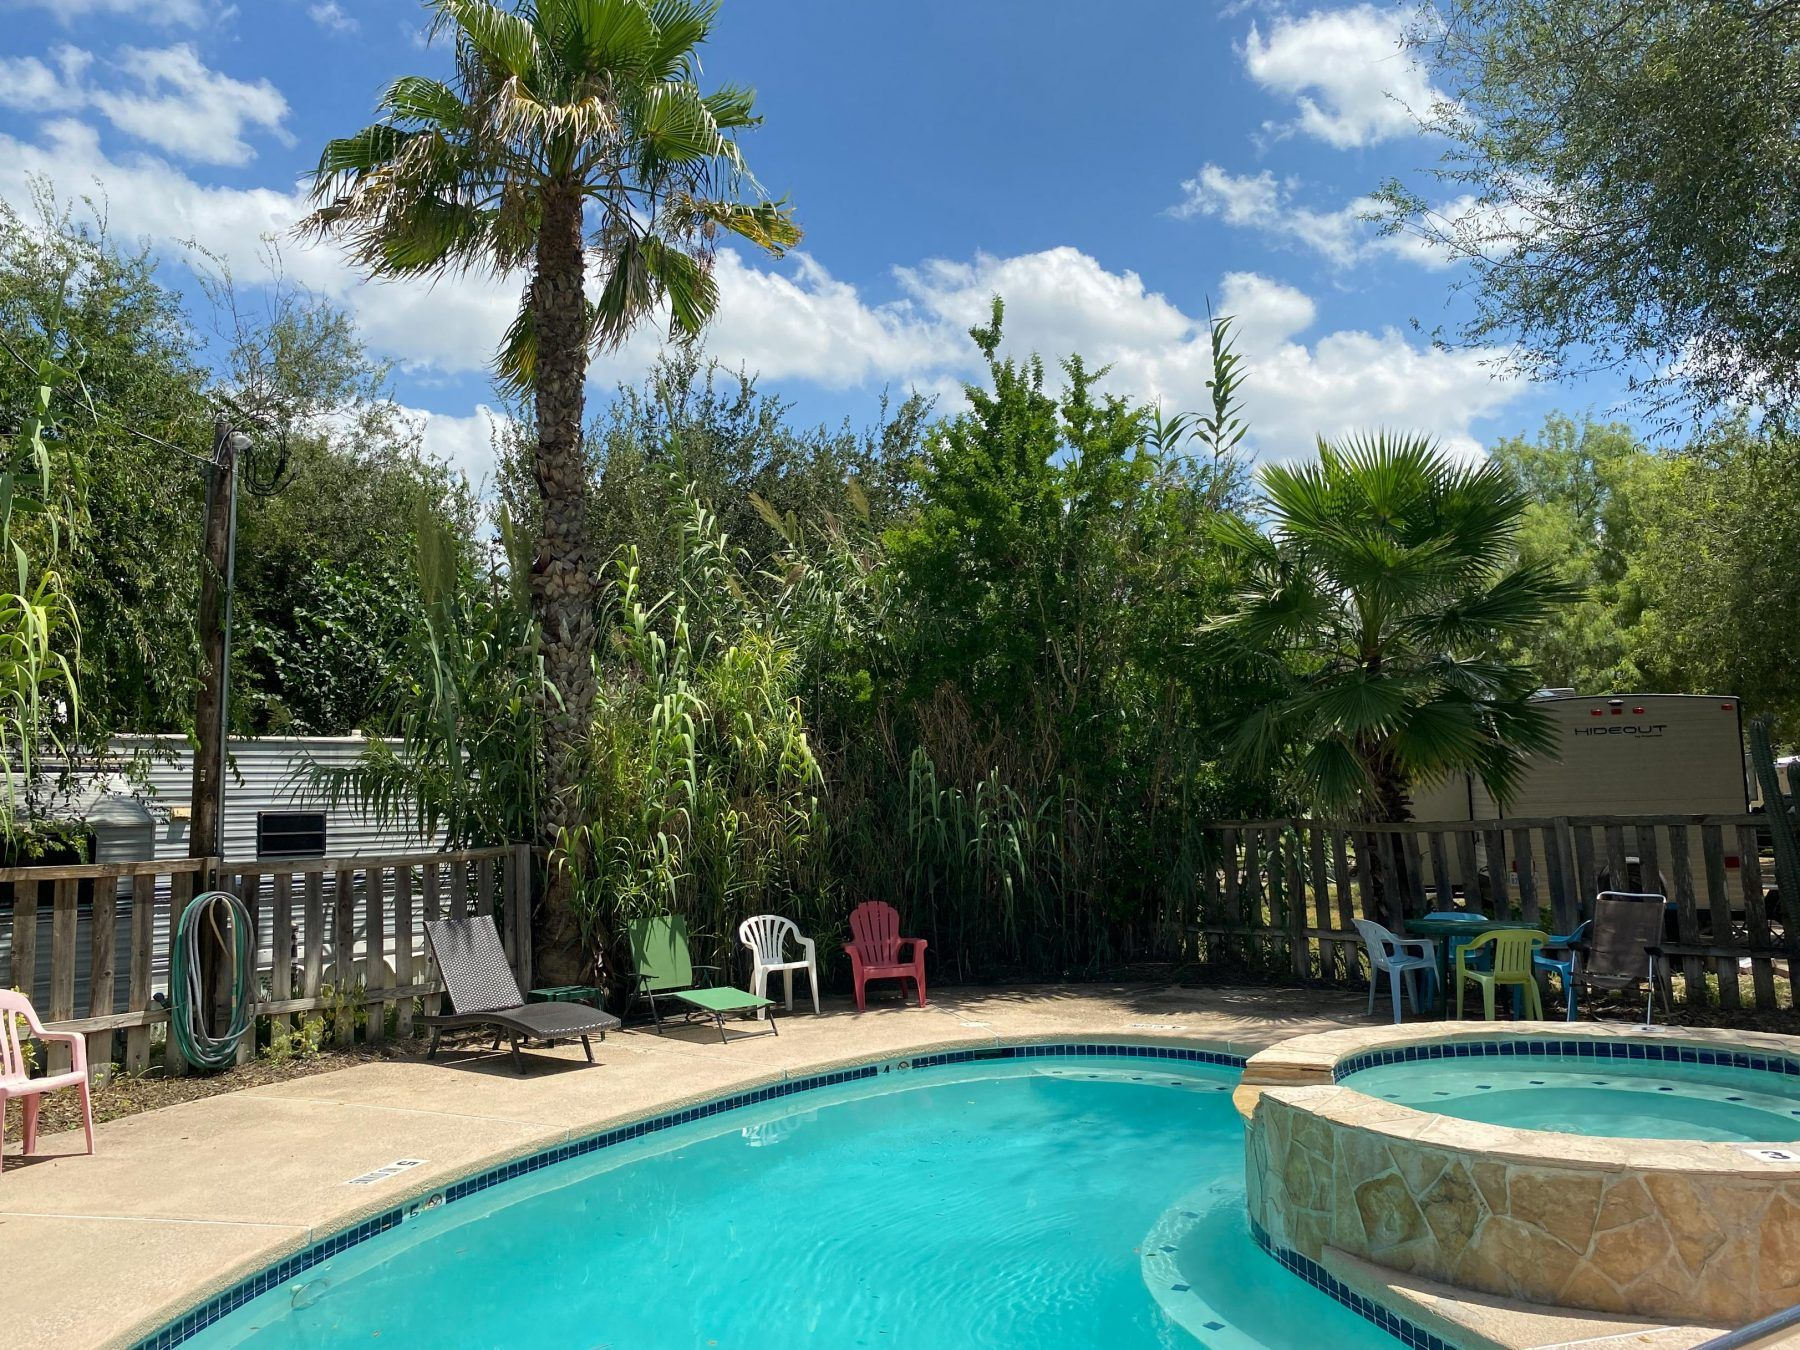 Enjoy the pool and spa at our RV park near Mission, TX